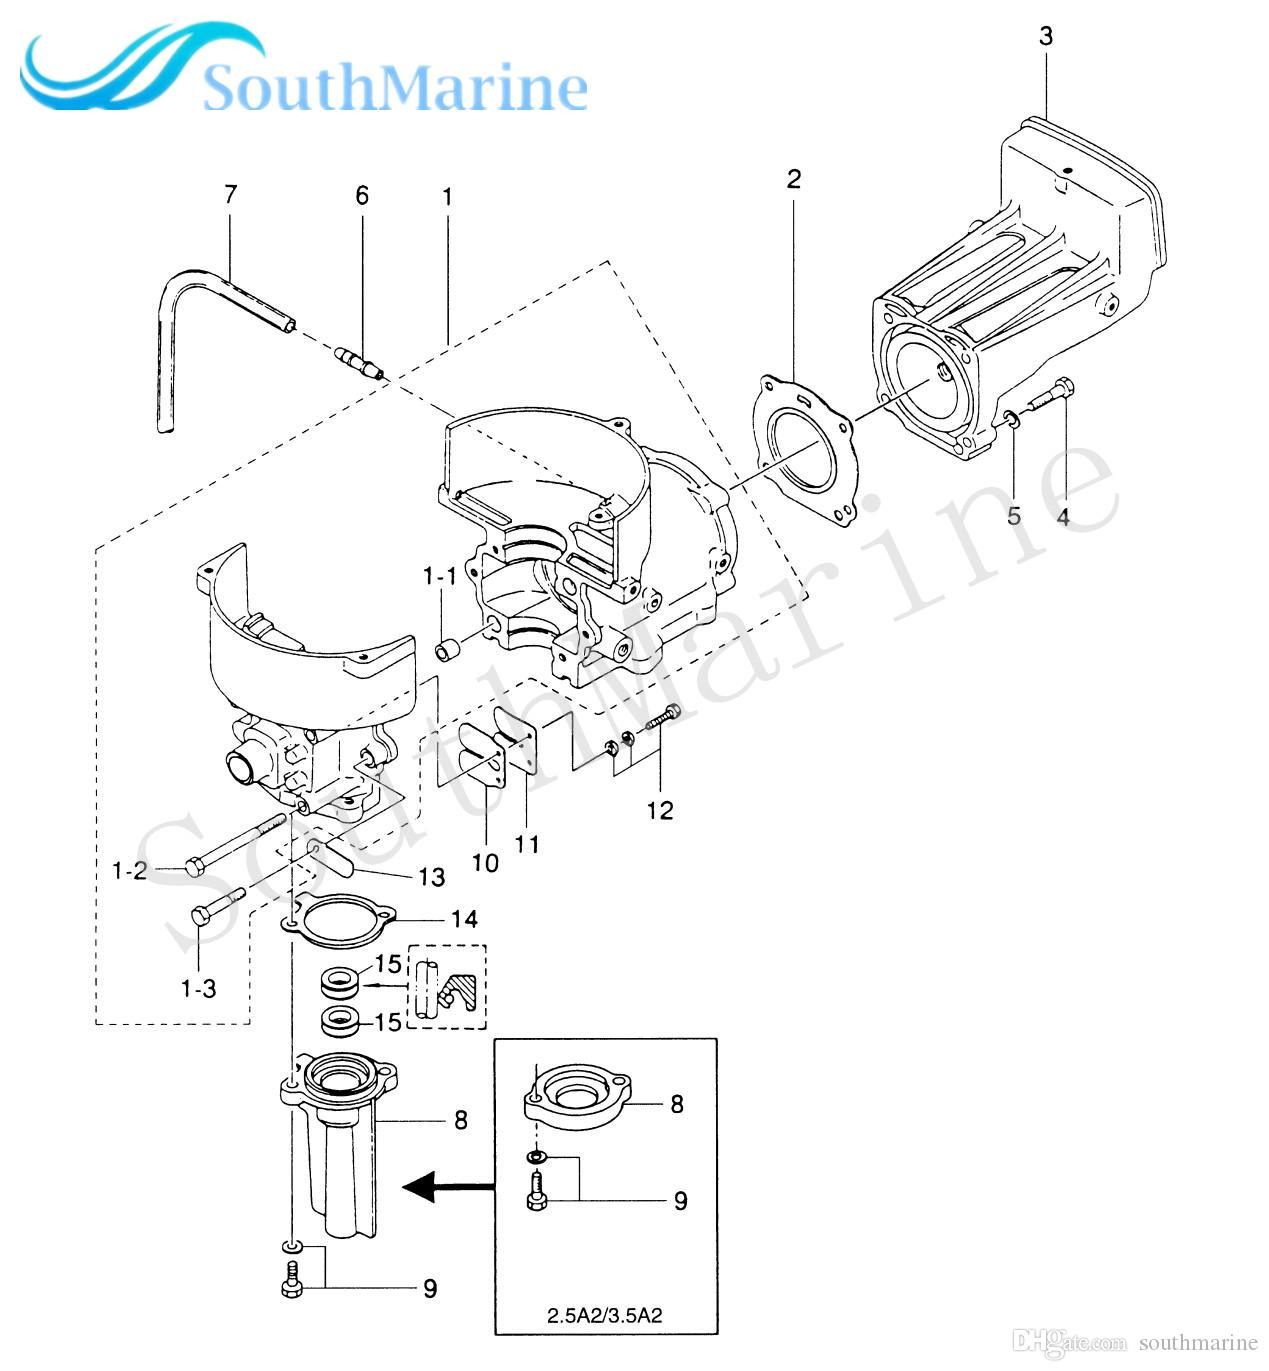 old johnson outboard motor manual